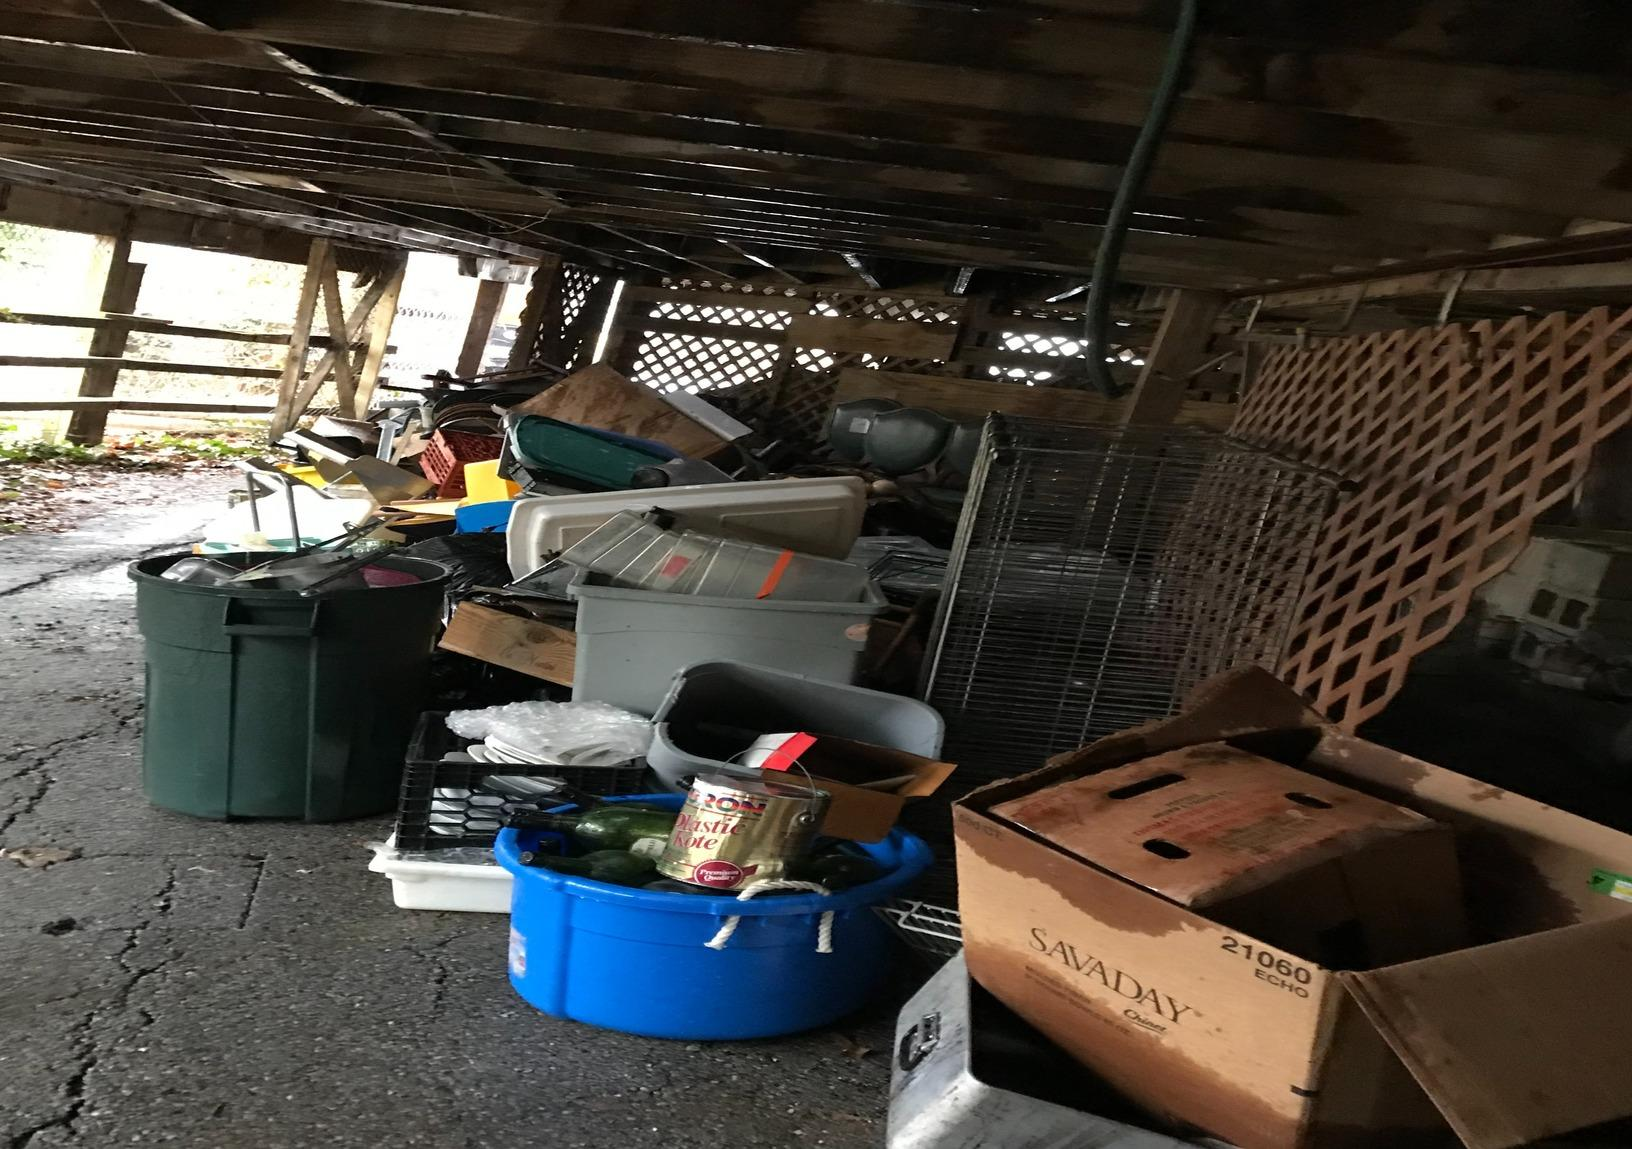 Junk removal, Dayton MD - Before Photo